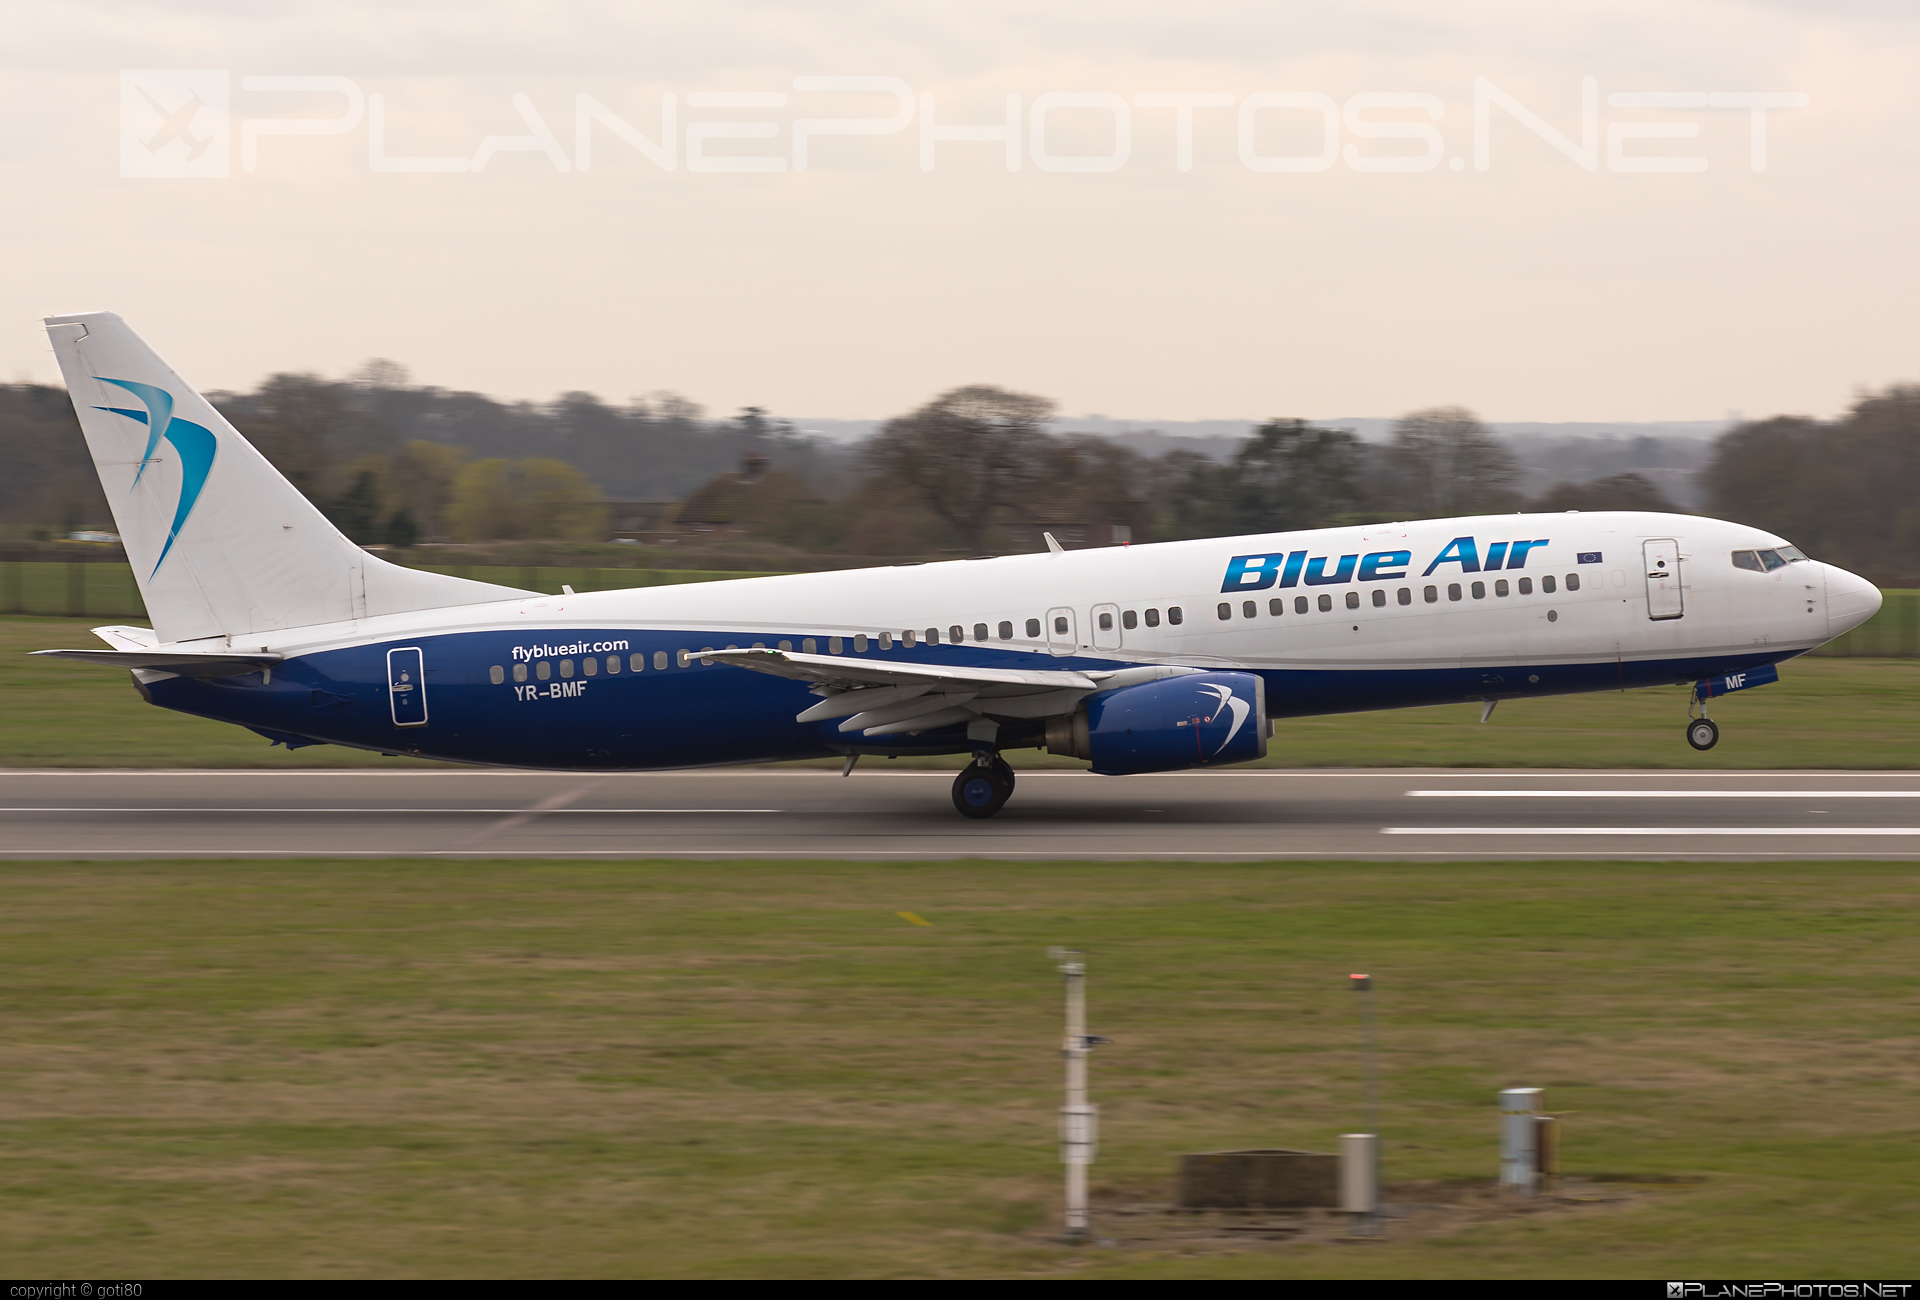 Boeing 737-800 - YR-BMF operated by Blue Air #b737 #b737nextgen #b737ng #boeing #boeing737